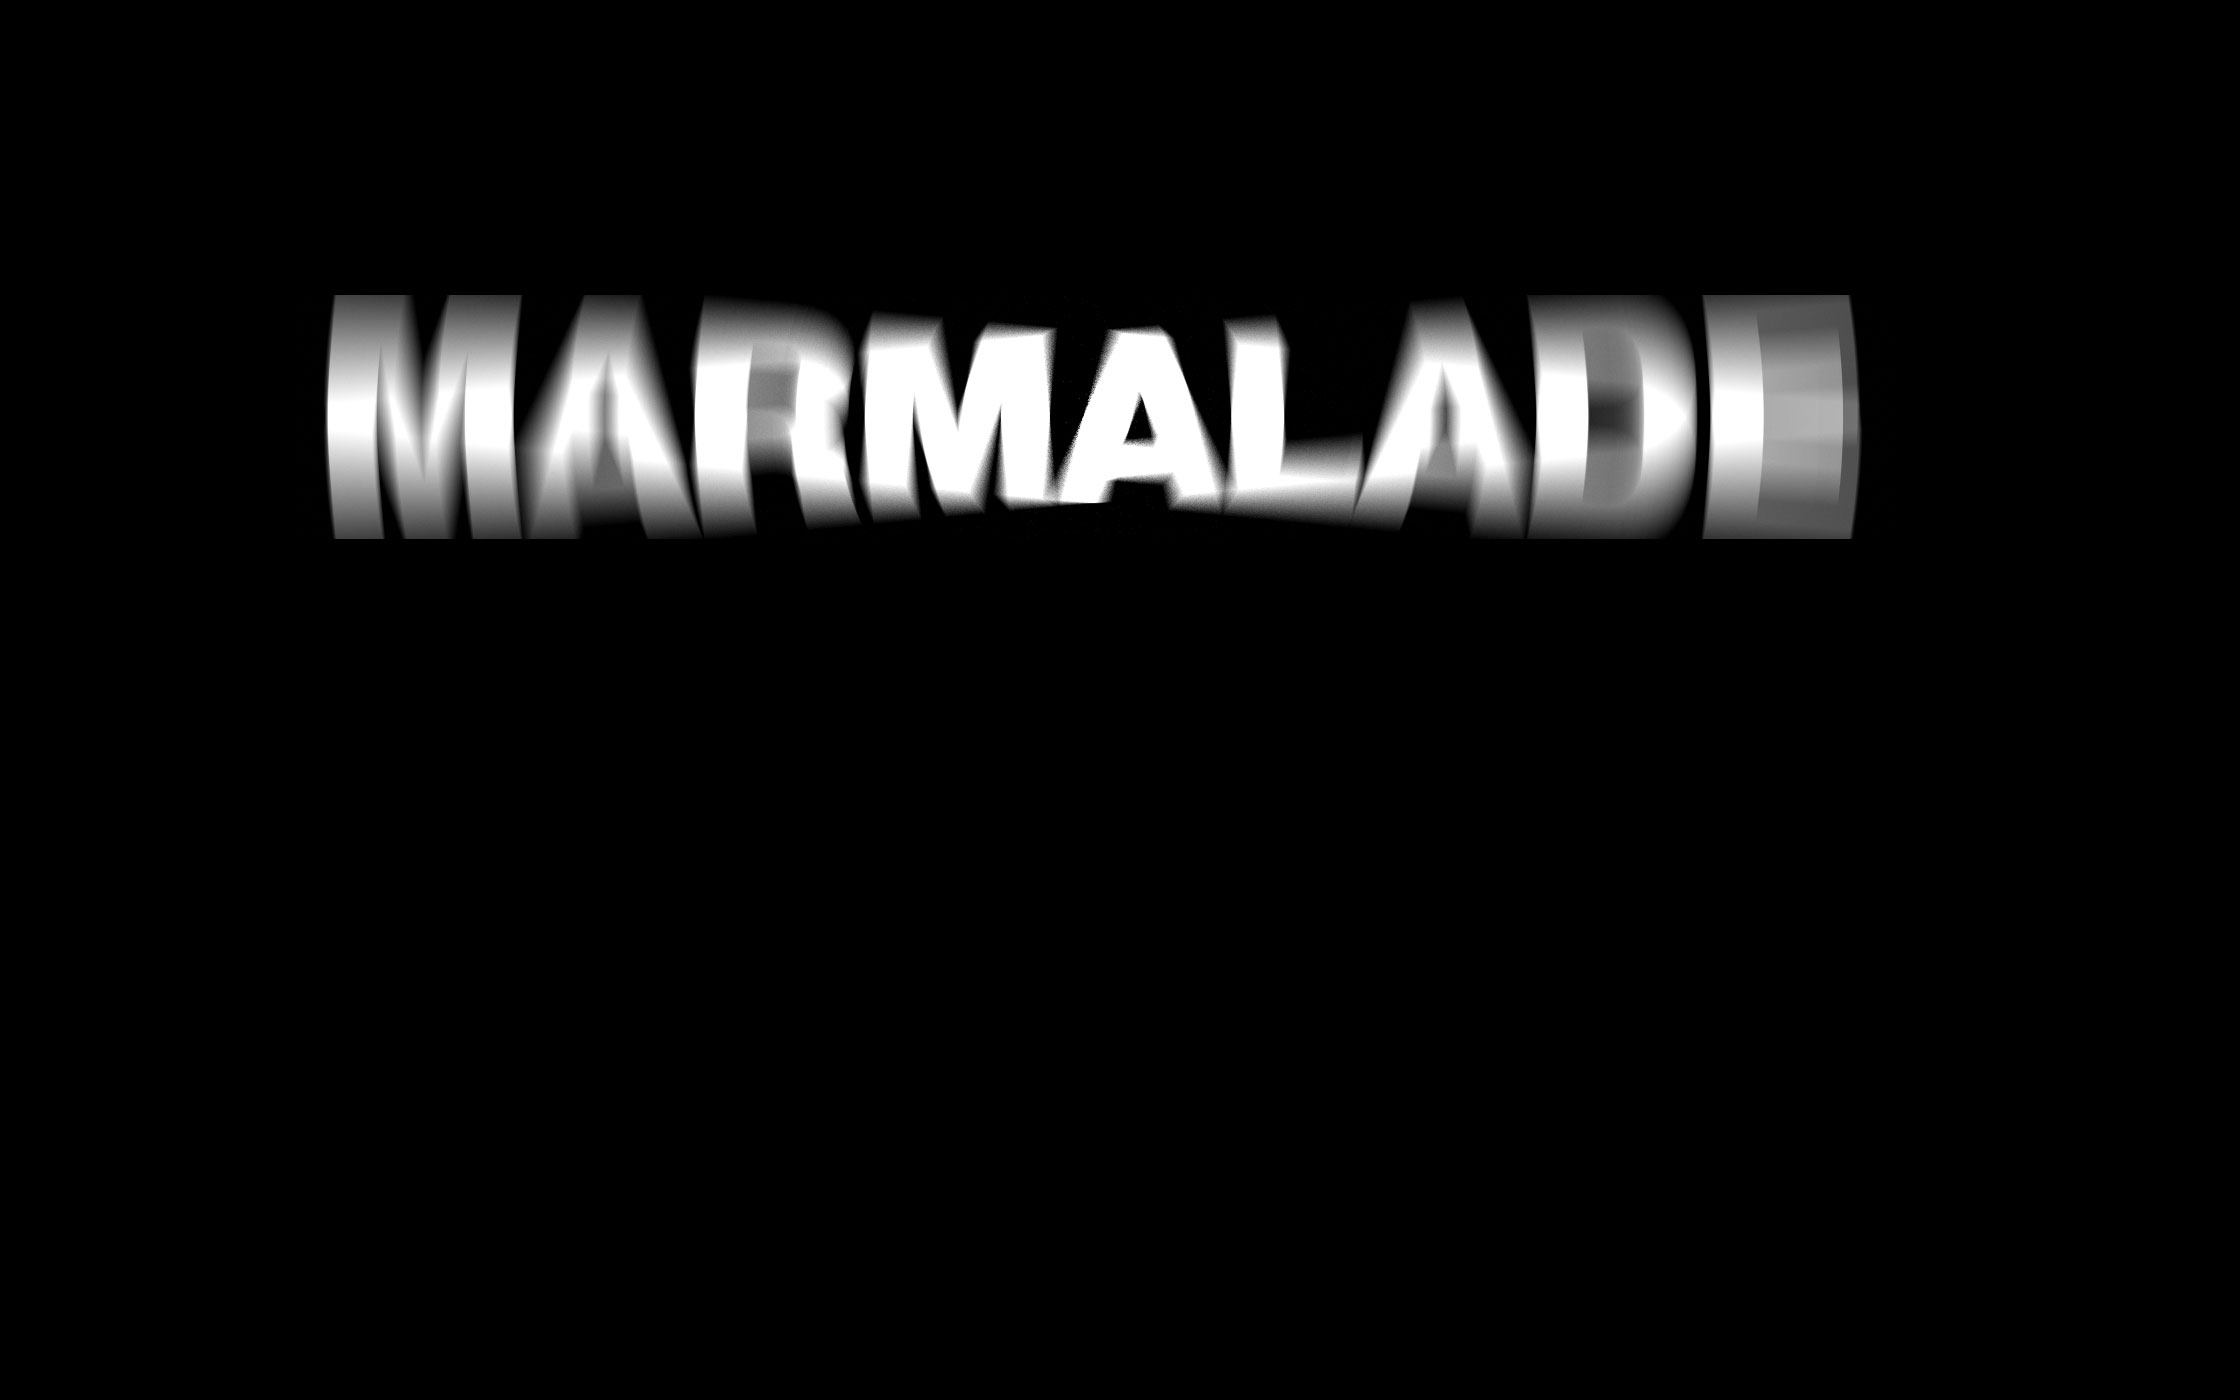 We Get Chosen By The BBC To Rebrand Marmalade!